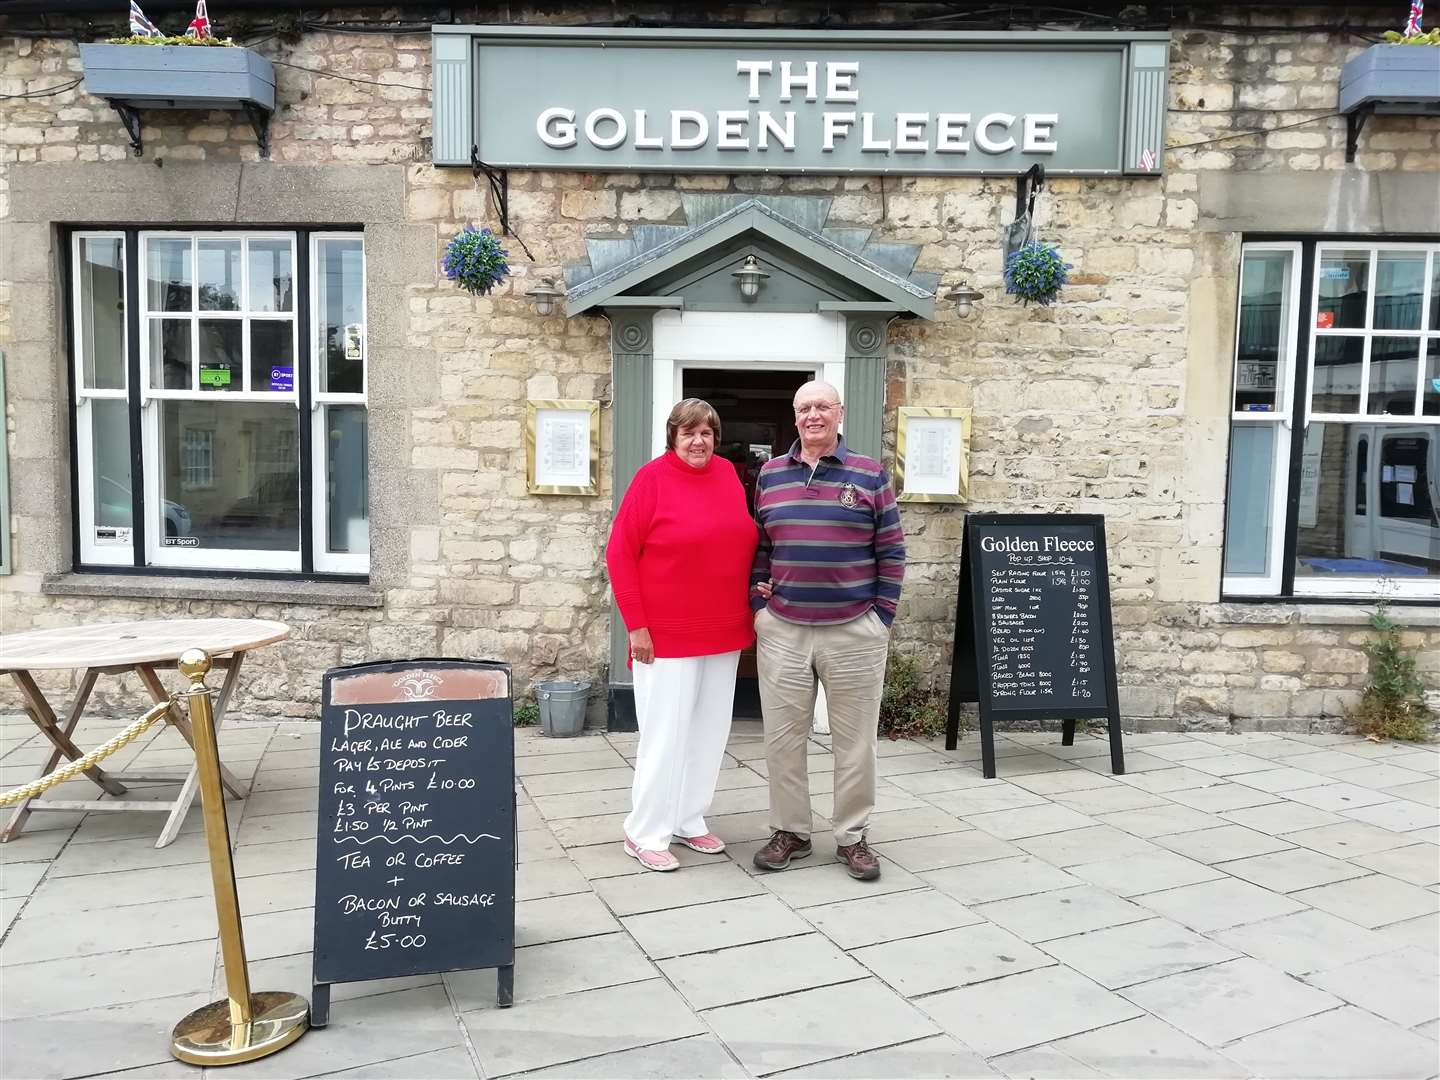 Mick and Teresa Purvis, landlords of The Golden Fleece pub in Stamford